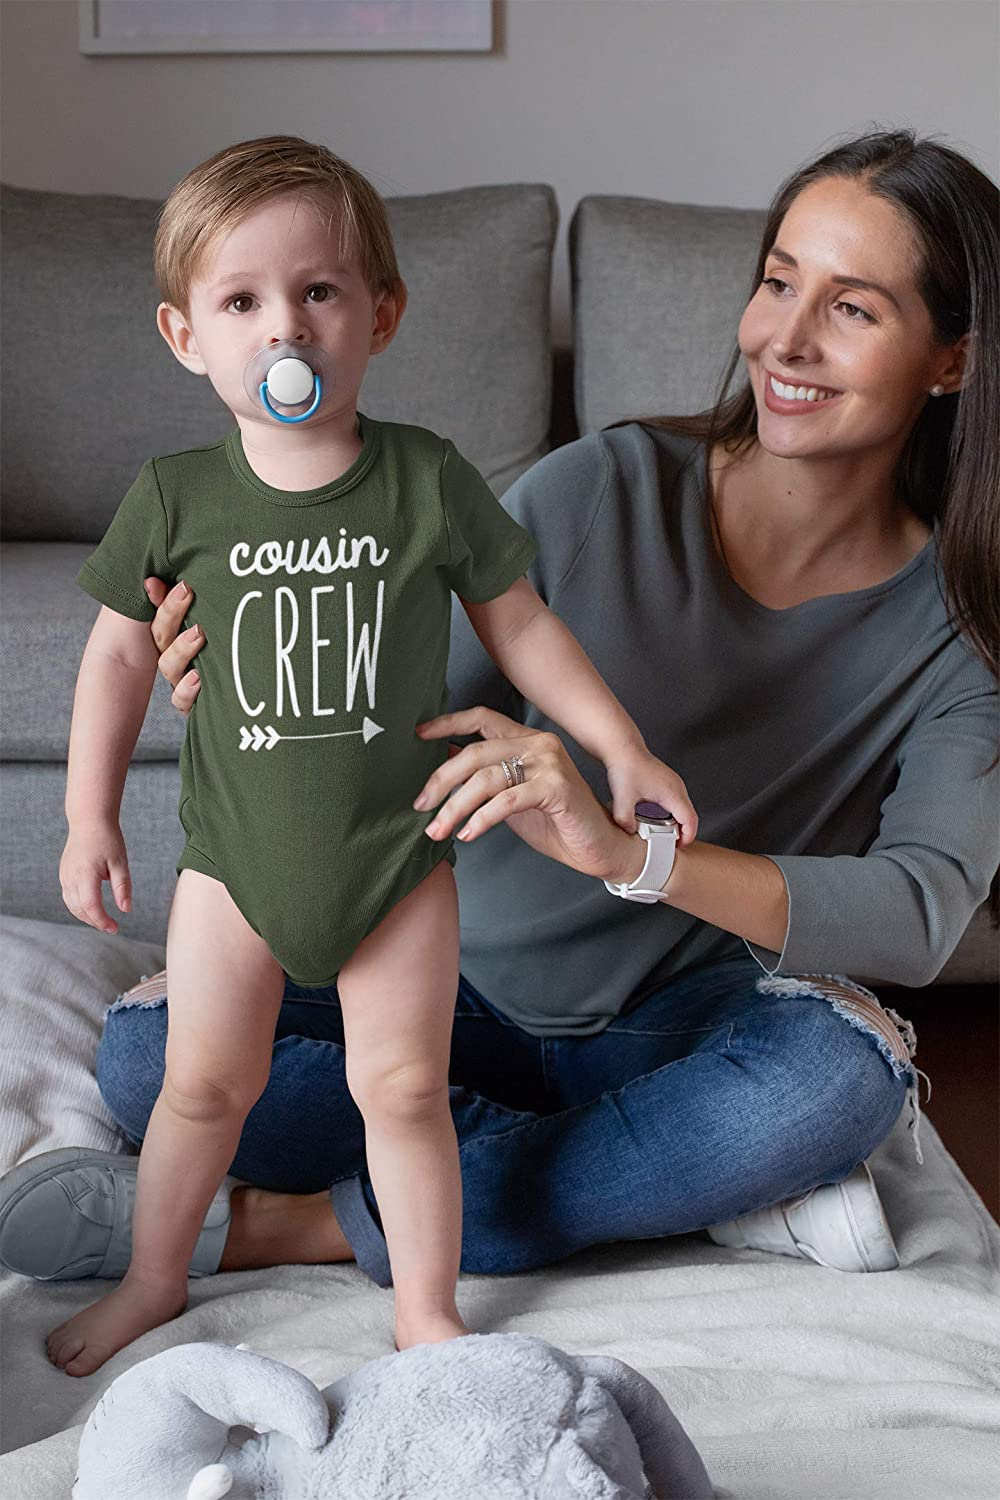 Cousin Crew Arrow T-Shirts and Bodysuits for Baby and Toddler Boy and Girls Fun Family Outfits